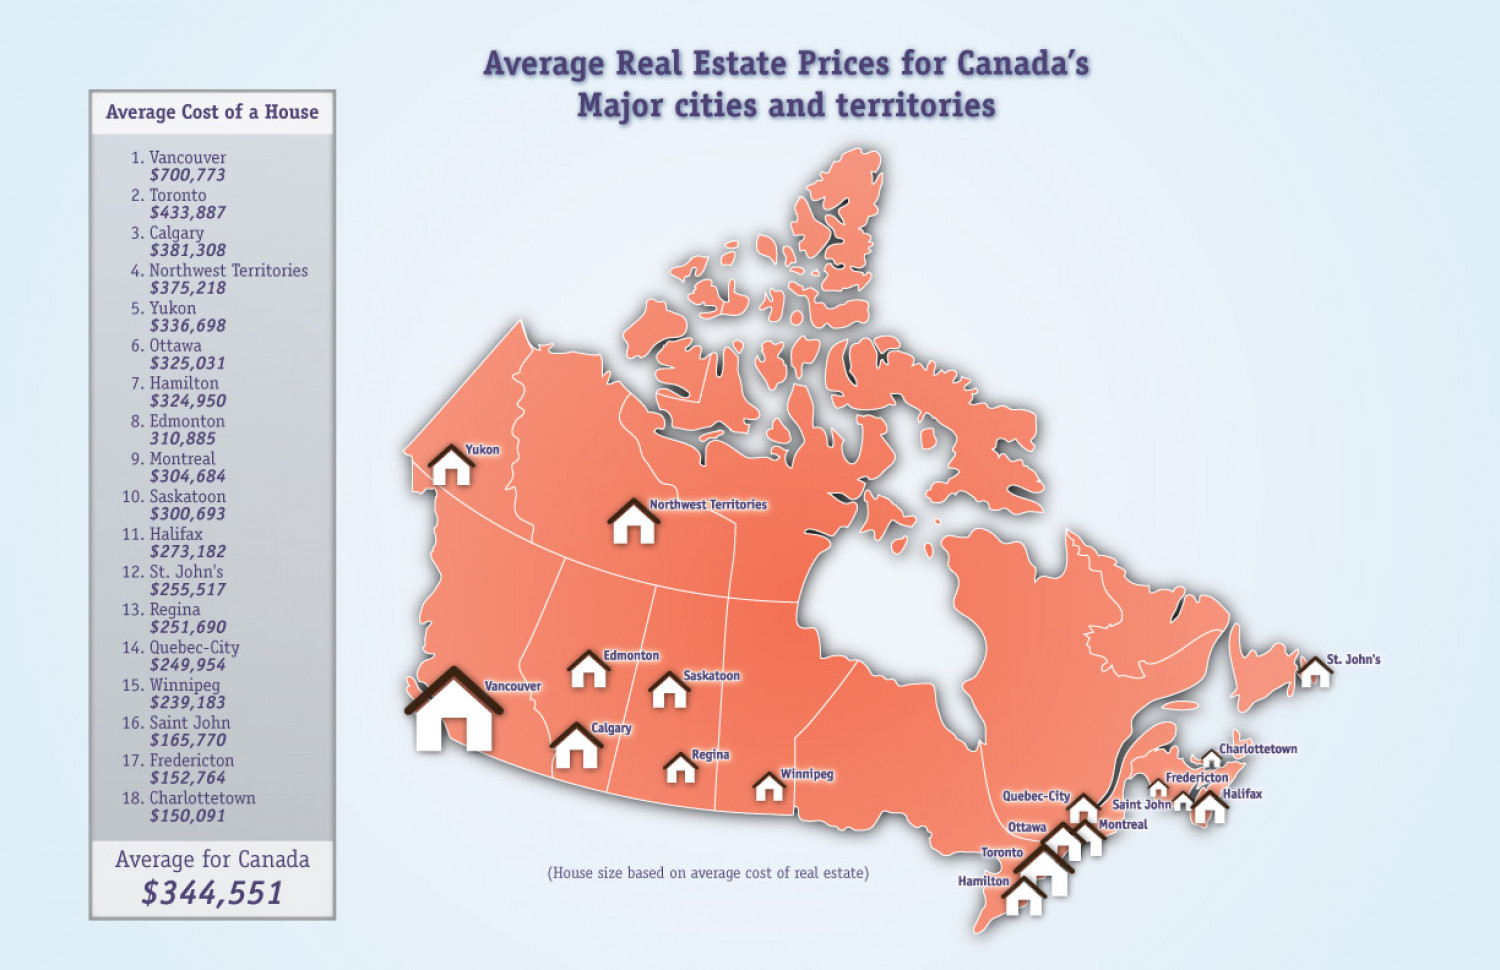 Average Real Estate Prices in Canada Infographic